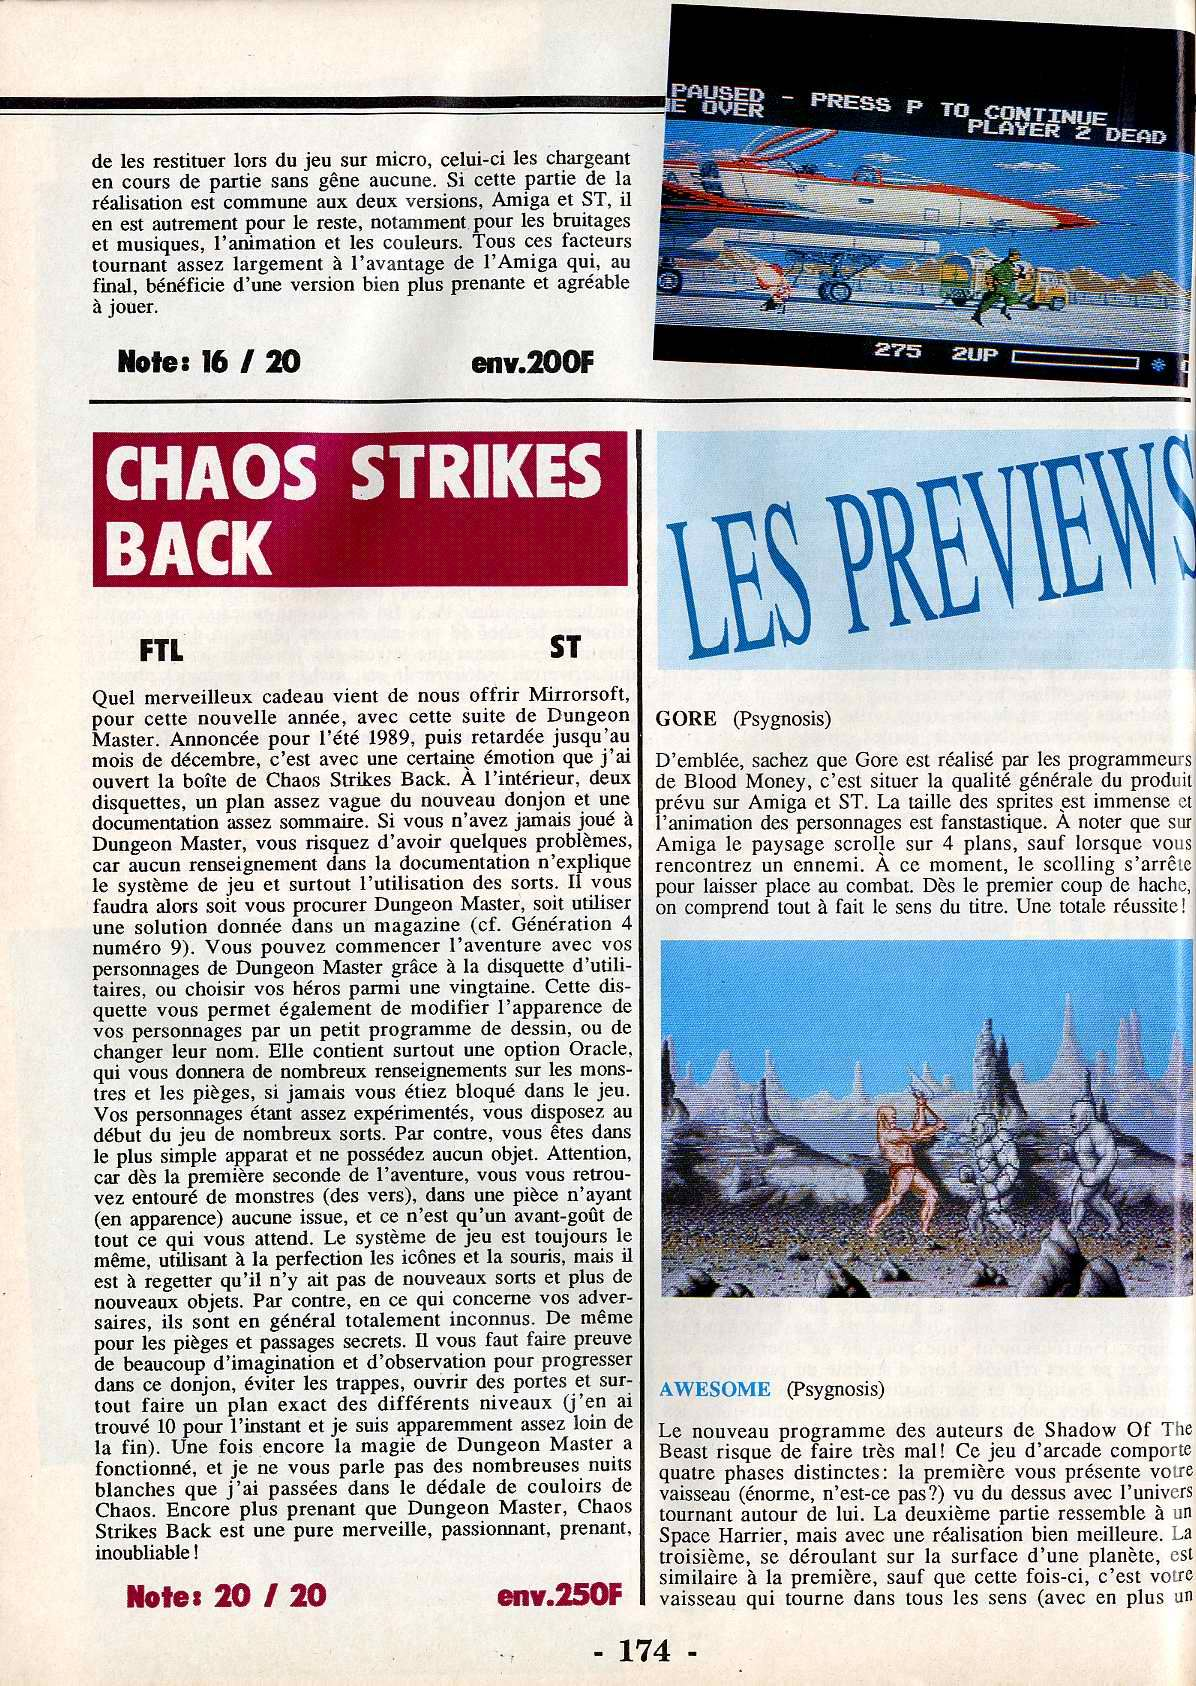 Chaos Strikes Back for Atari ST Review published in French magazine 'ST Magazine', Issue #37 February 1990, Page 174